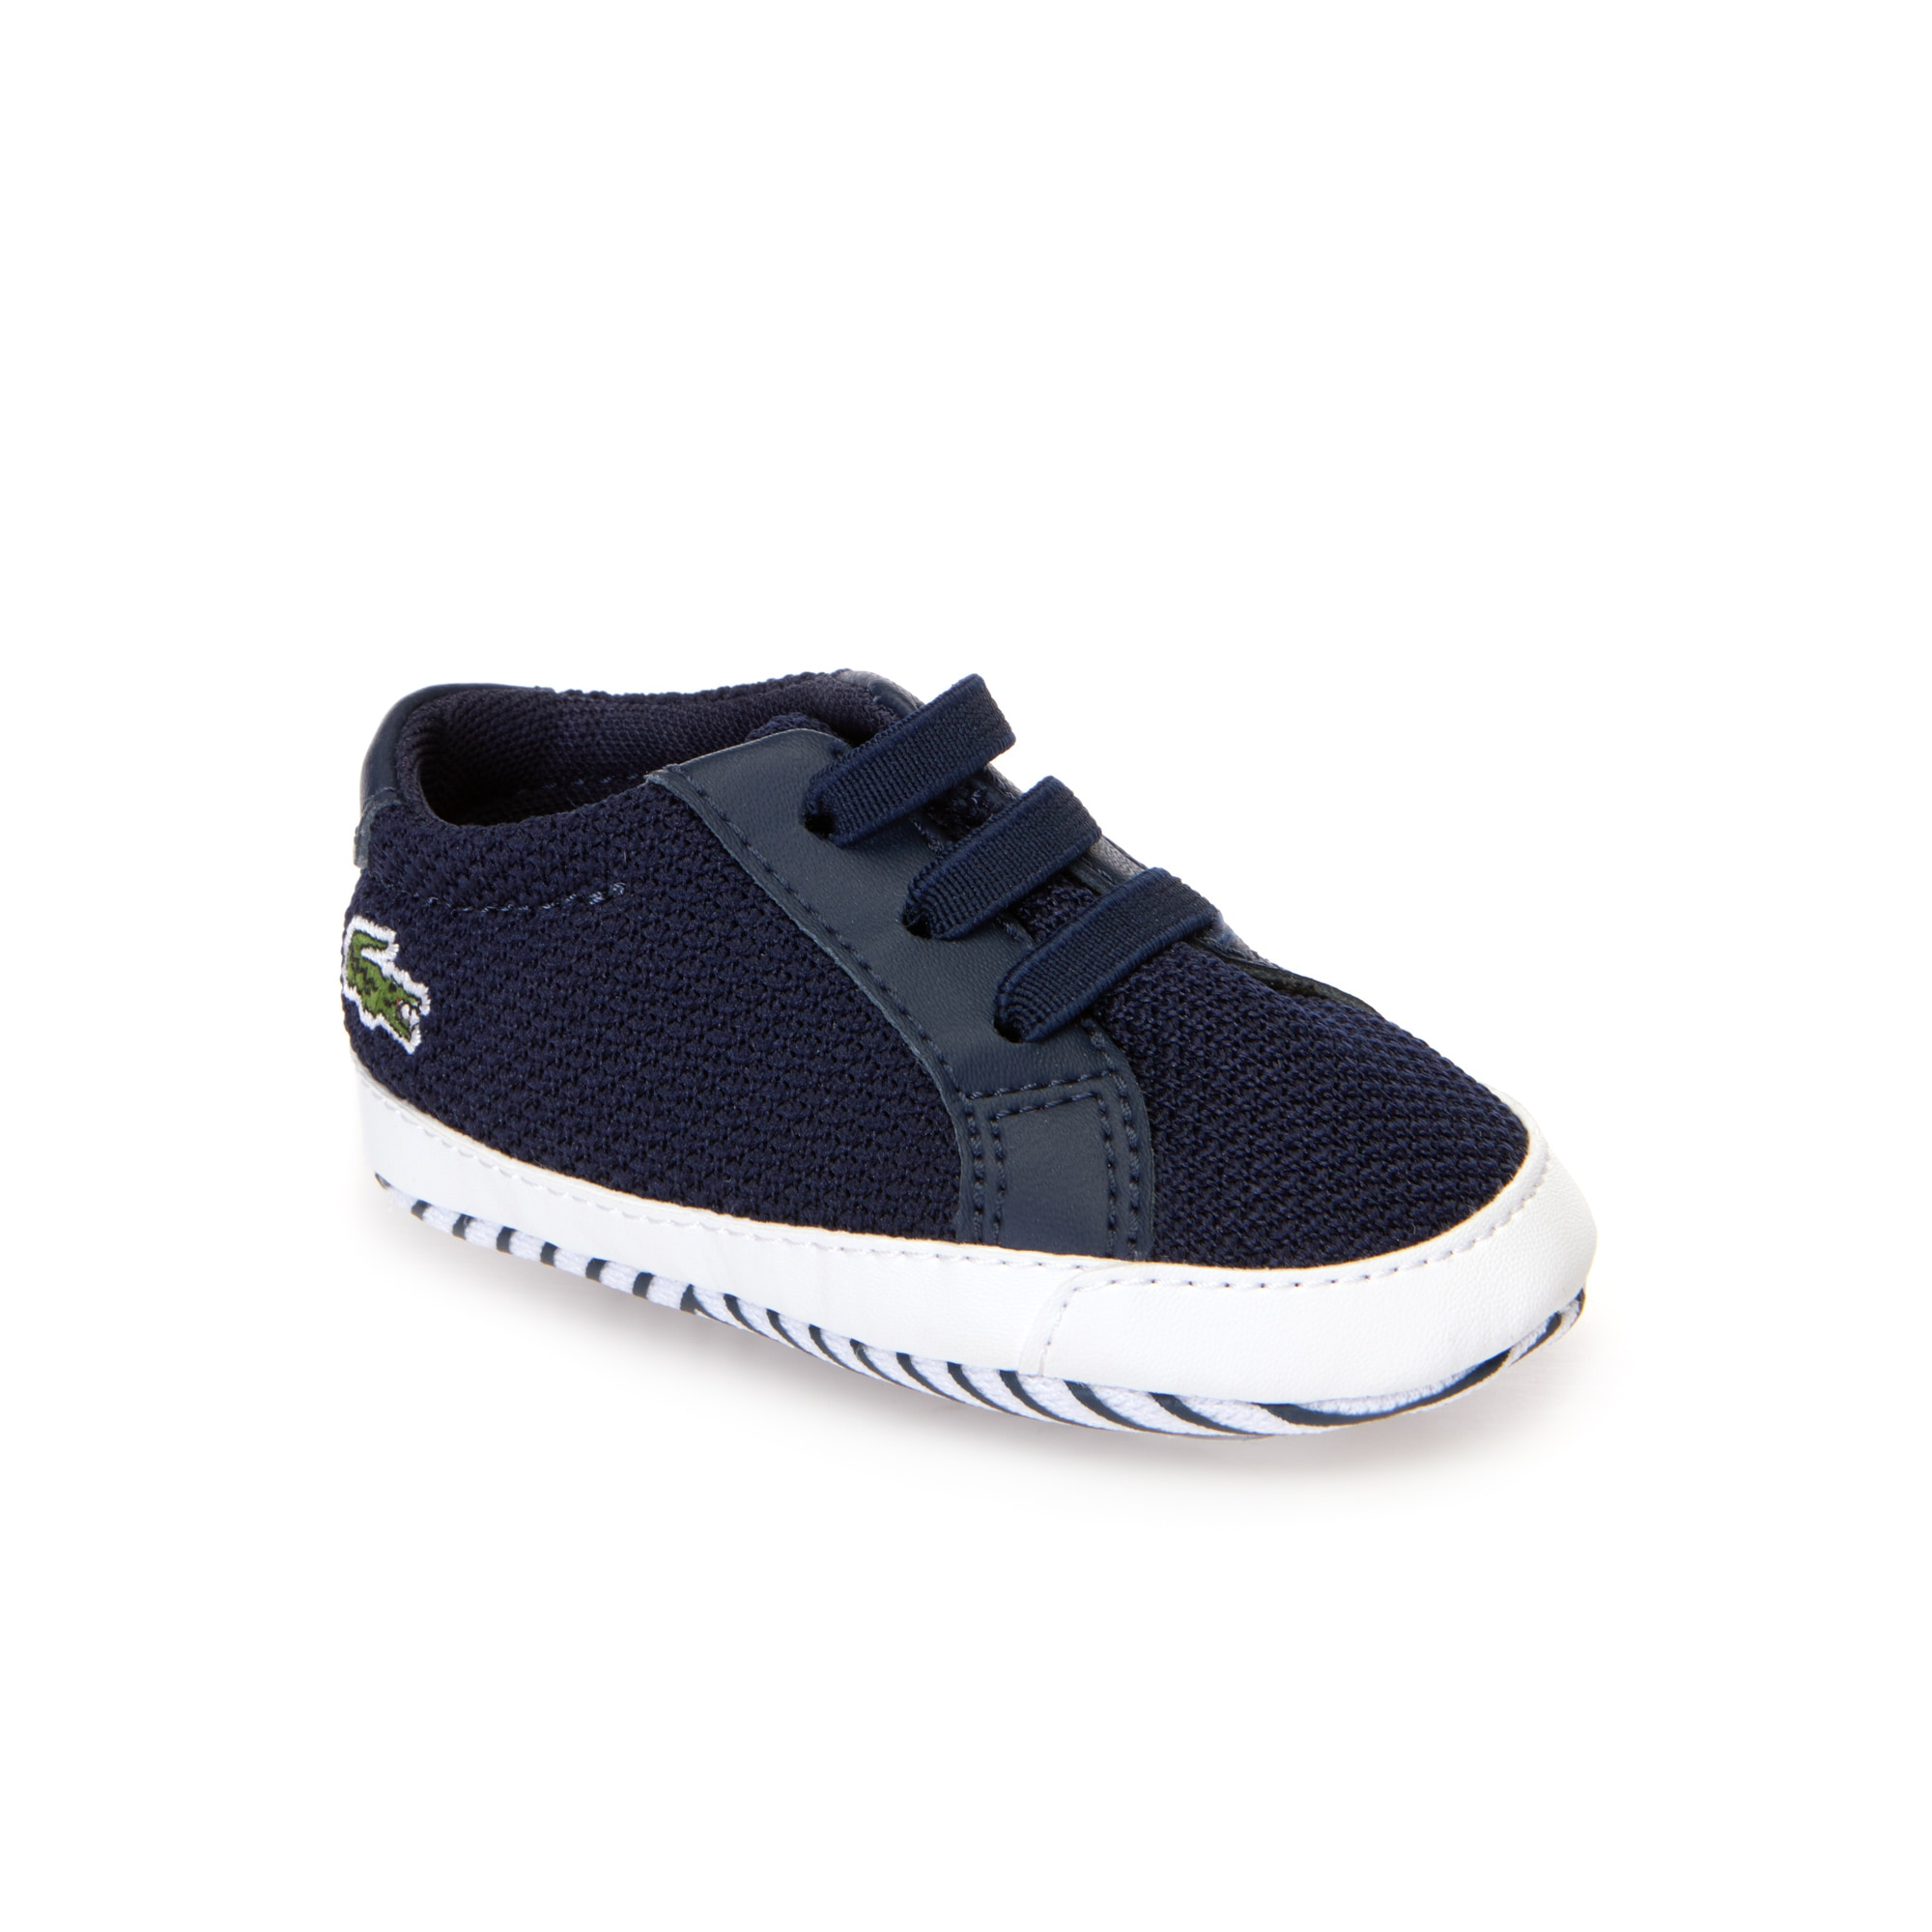 Babies' L.12.12 Crib Textile Trainers